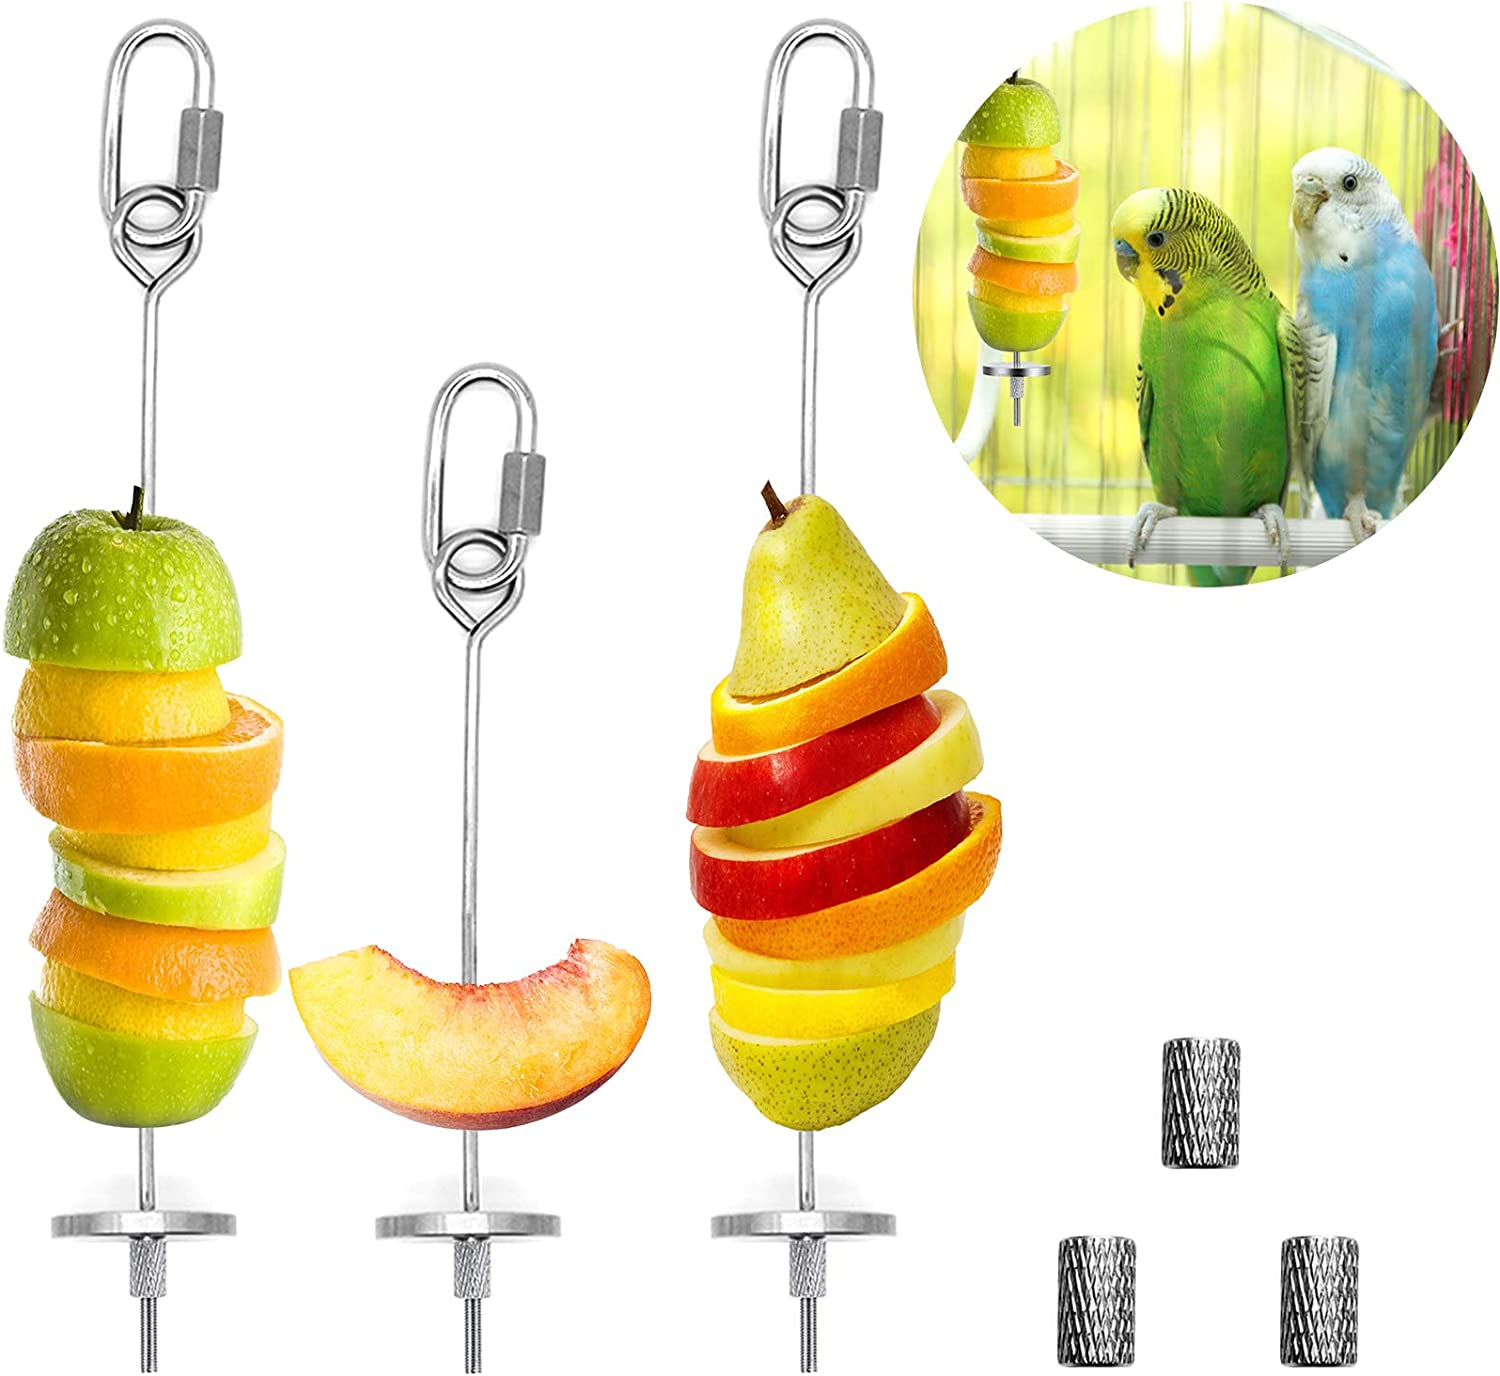 3Pcs Bird Food Holder, Bird Feeder Toy, Stainless Steel Small Animal Fruit Vegetable Stick Skewer, Foraging Hanging Food Feeding Treating Tool for Parrots Cockatoo Cockatiel Cage